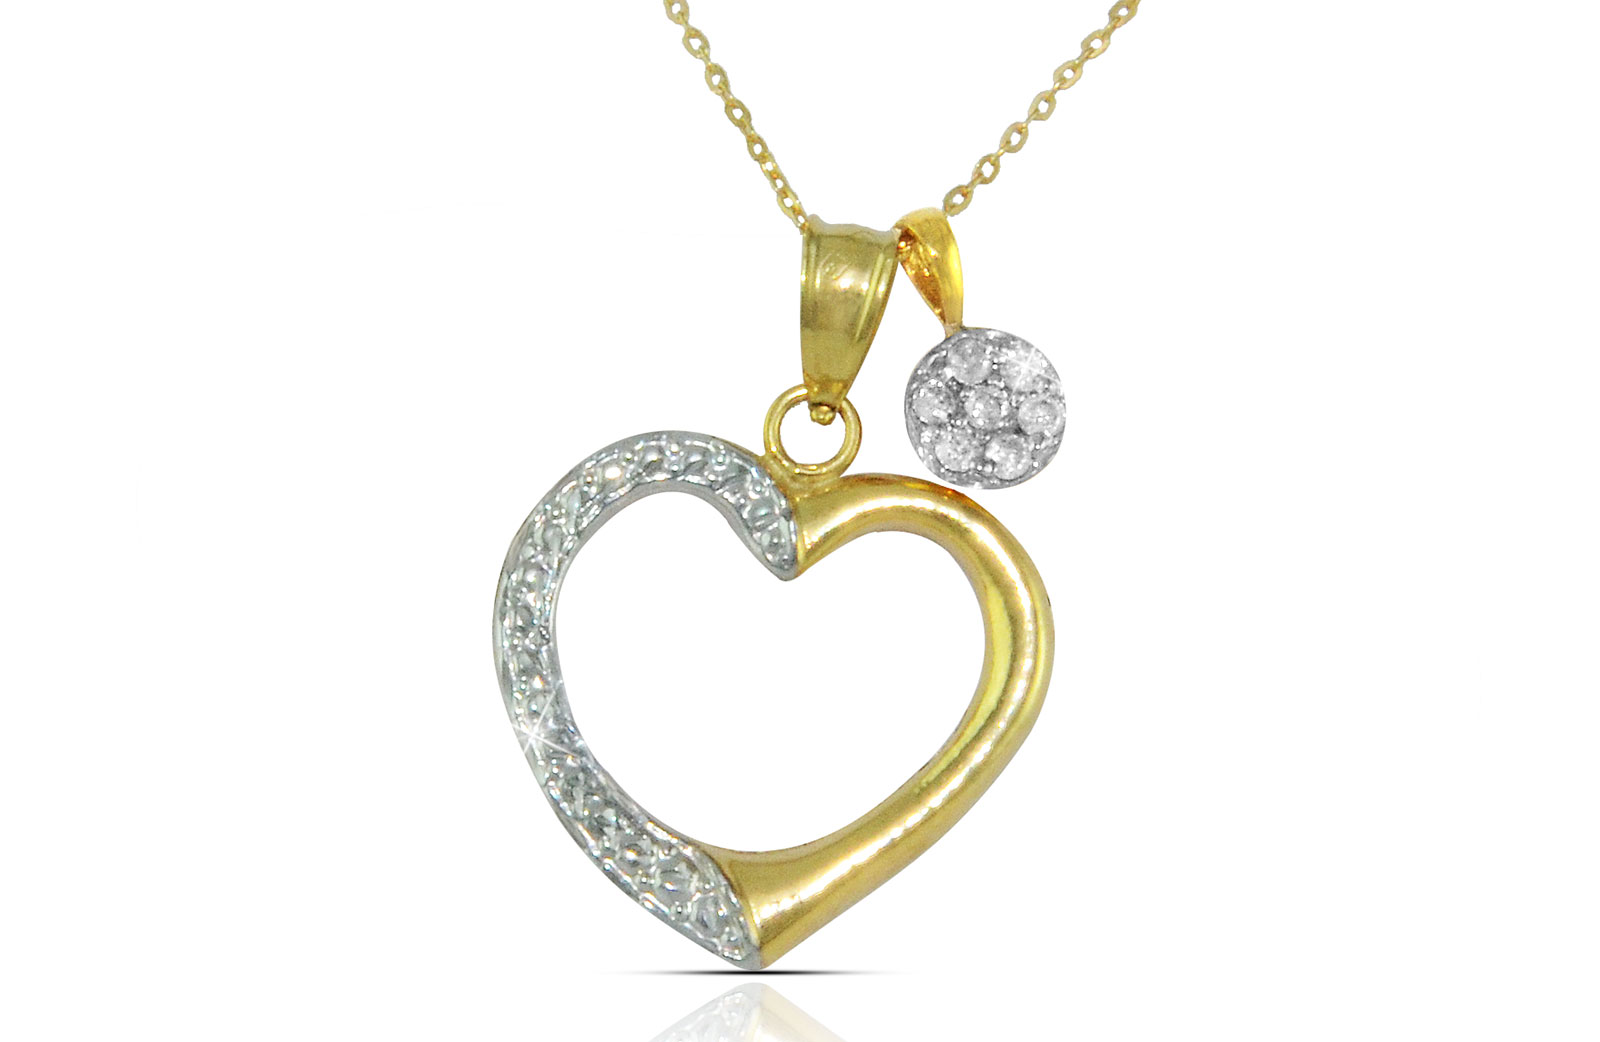 Vera Perla  18K Solid Gold 0.07Cts Genuine Diamonds Heart and Solitaire Necklace